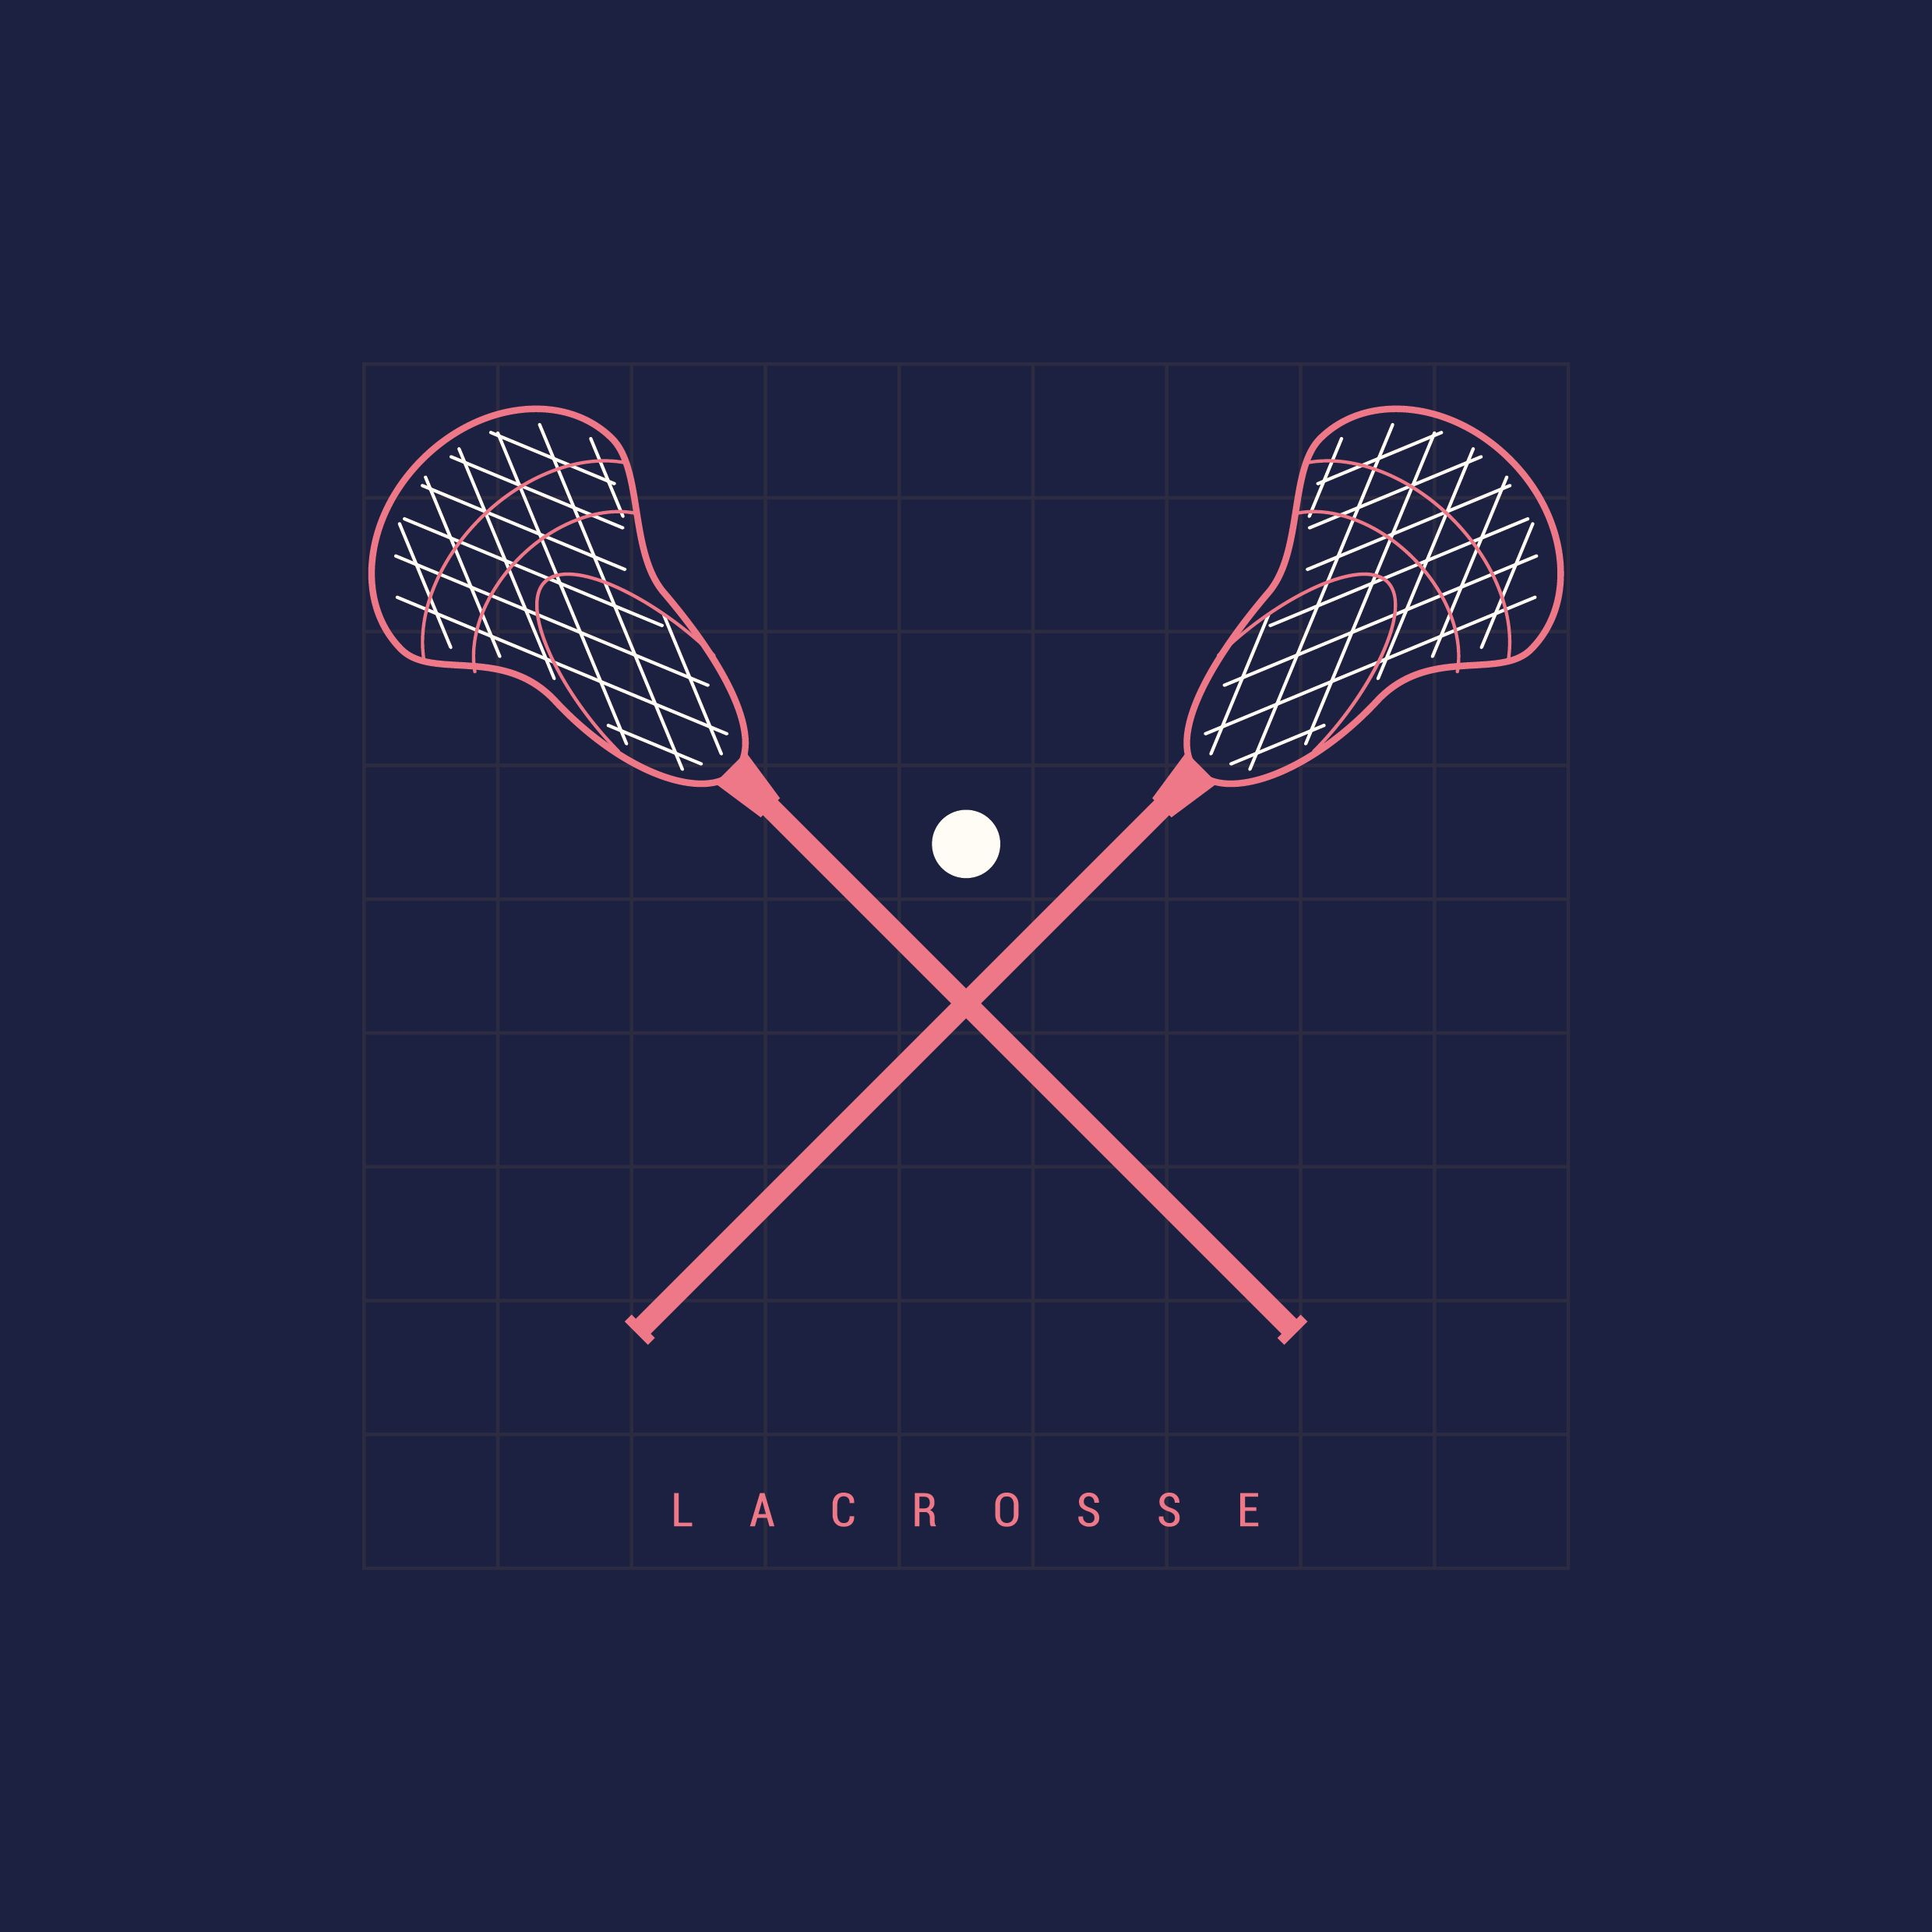 Lacrosse sticks and ball vector